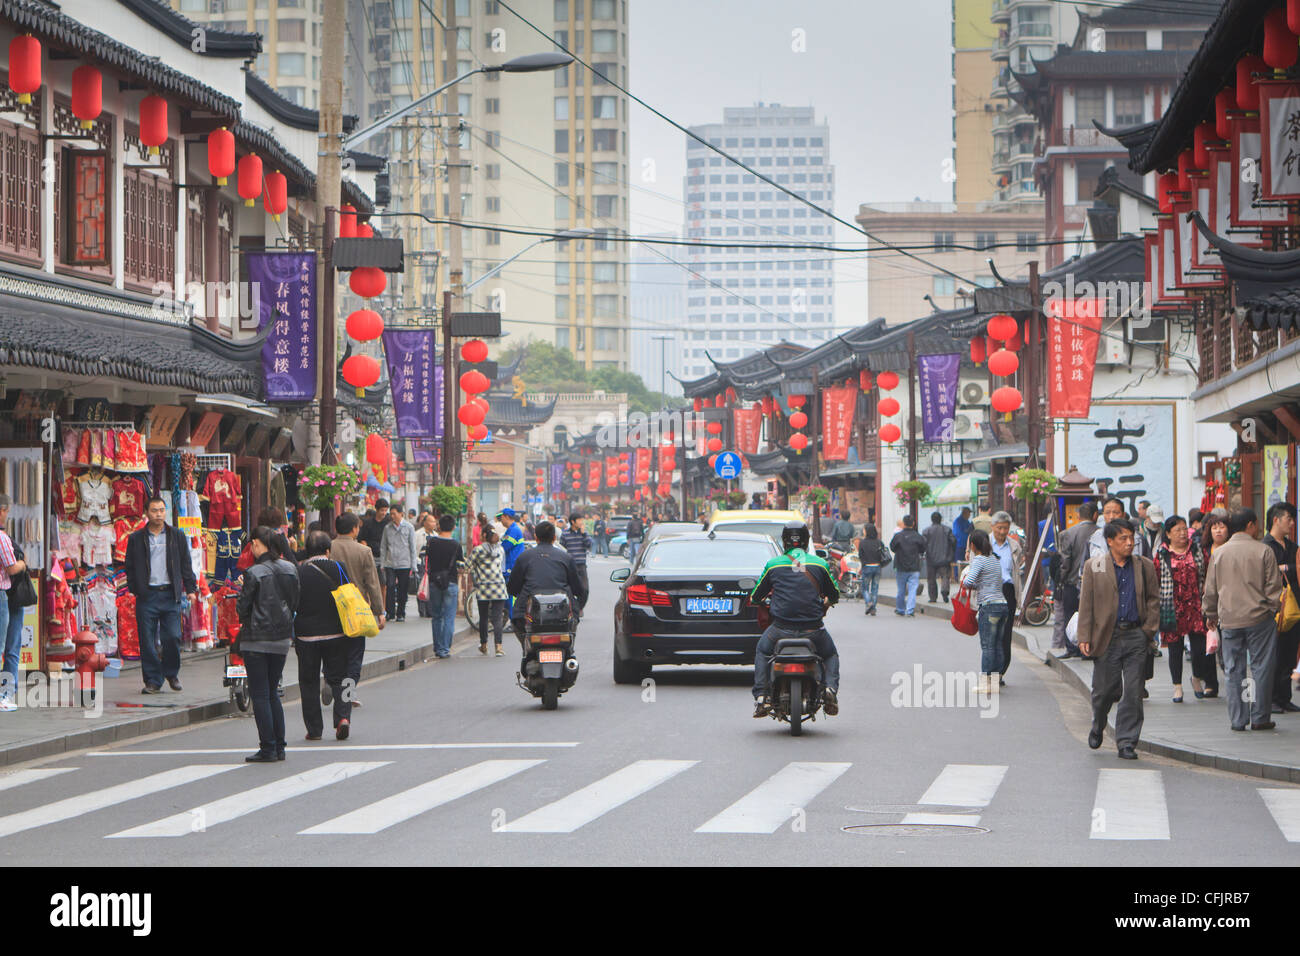 Pedestrians and traffic on Shanghai Old Street, remnant of a bygone age, Fuxing, Shanghai, China, Asia Stock Photo